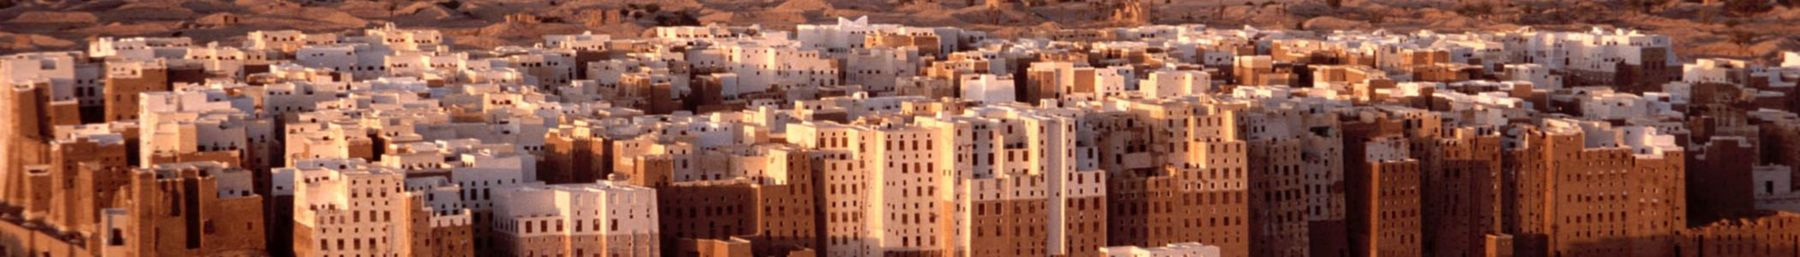 Mudbrick skyscrapers in the Walled City of Shibam, a UNESCO World Heritage site.